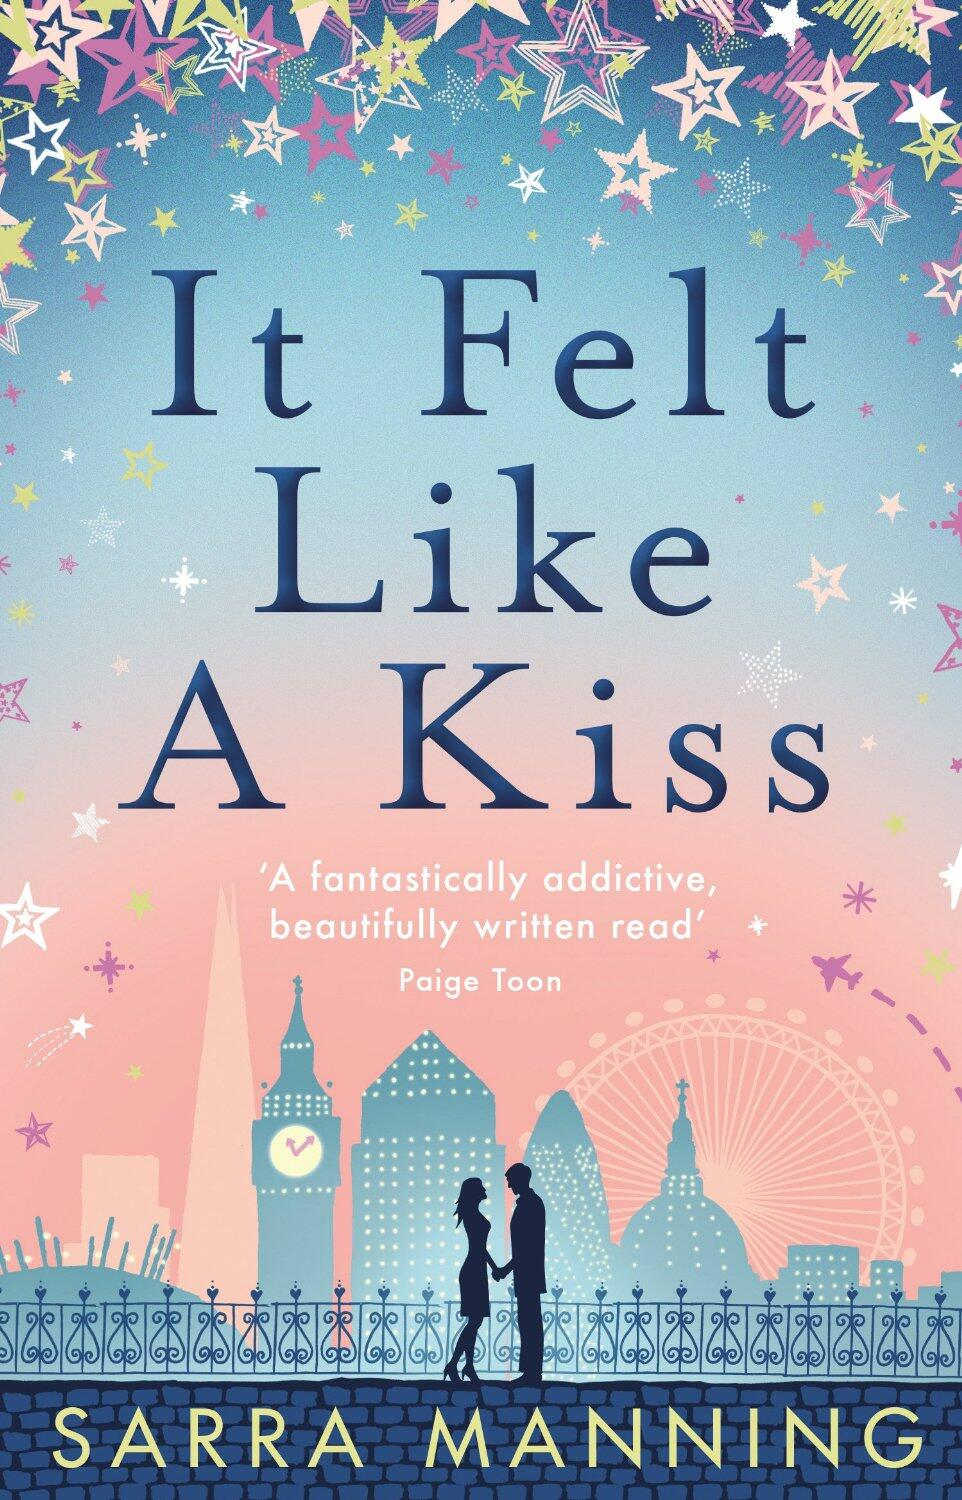 Want to read the first 5 chapters of IT FELT LIKE A KISS by @sarramanning? 1st chapter up on Sun! @TransworldBooks http://t.co/4chTqjgoOk